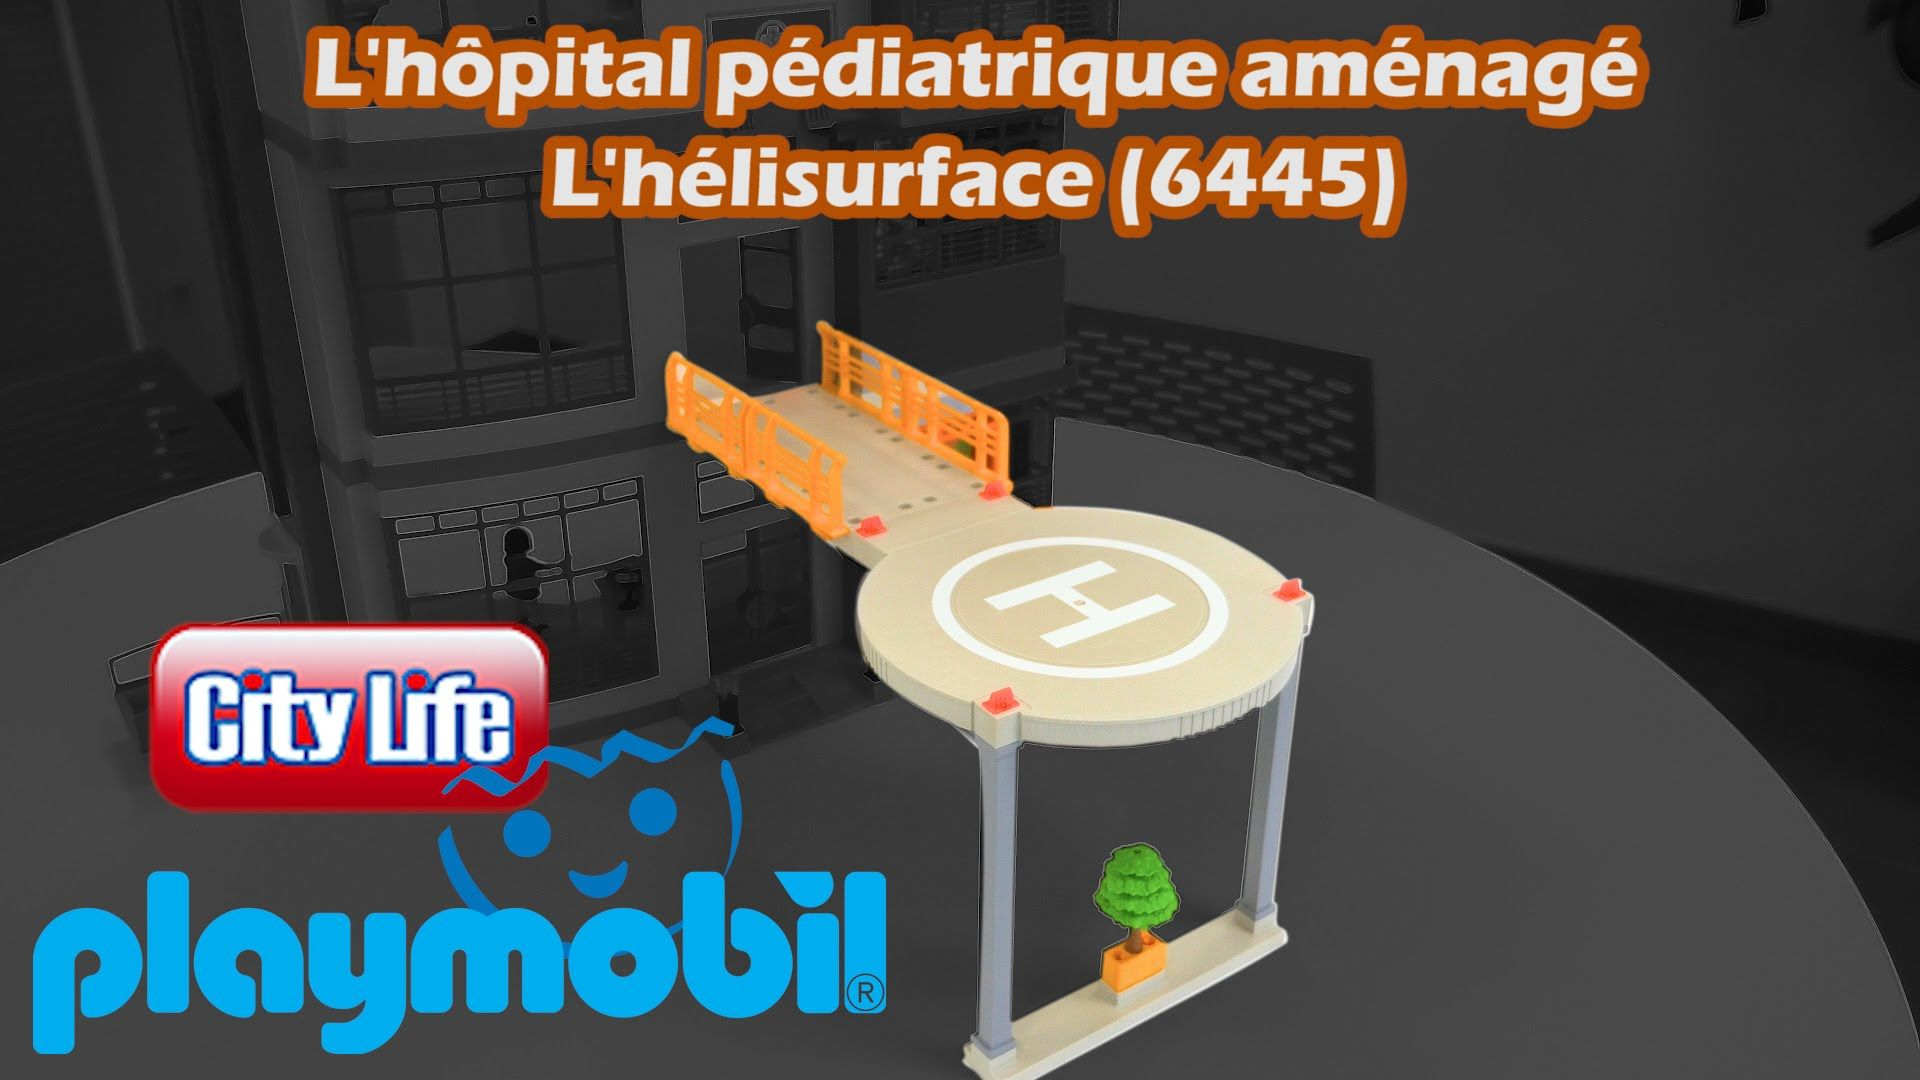 Playmobil 6445 h lisurface extension pour h pital for Playmobil 6445